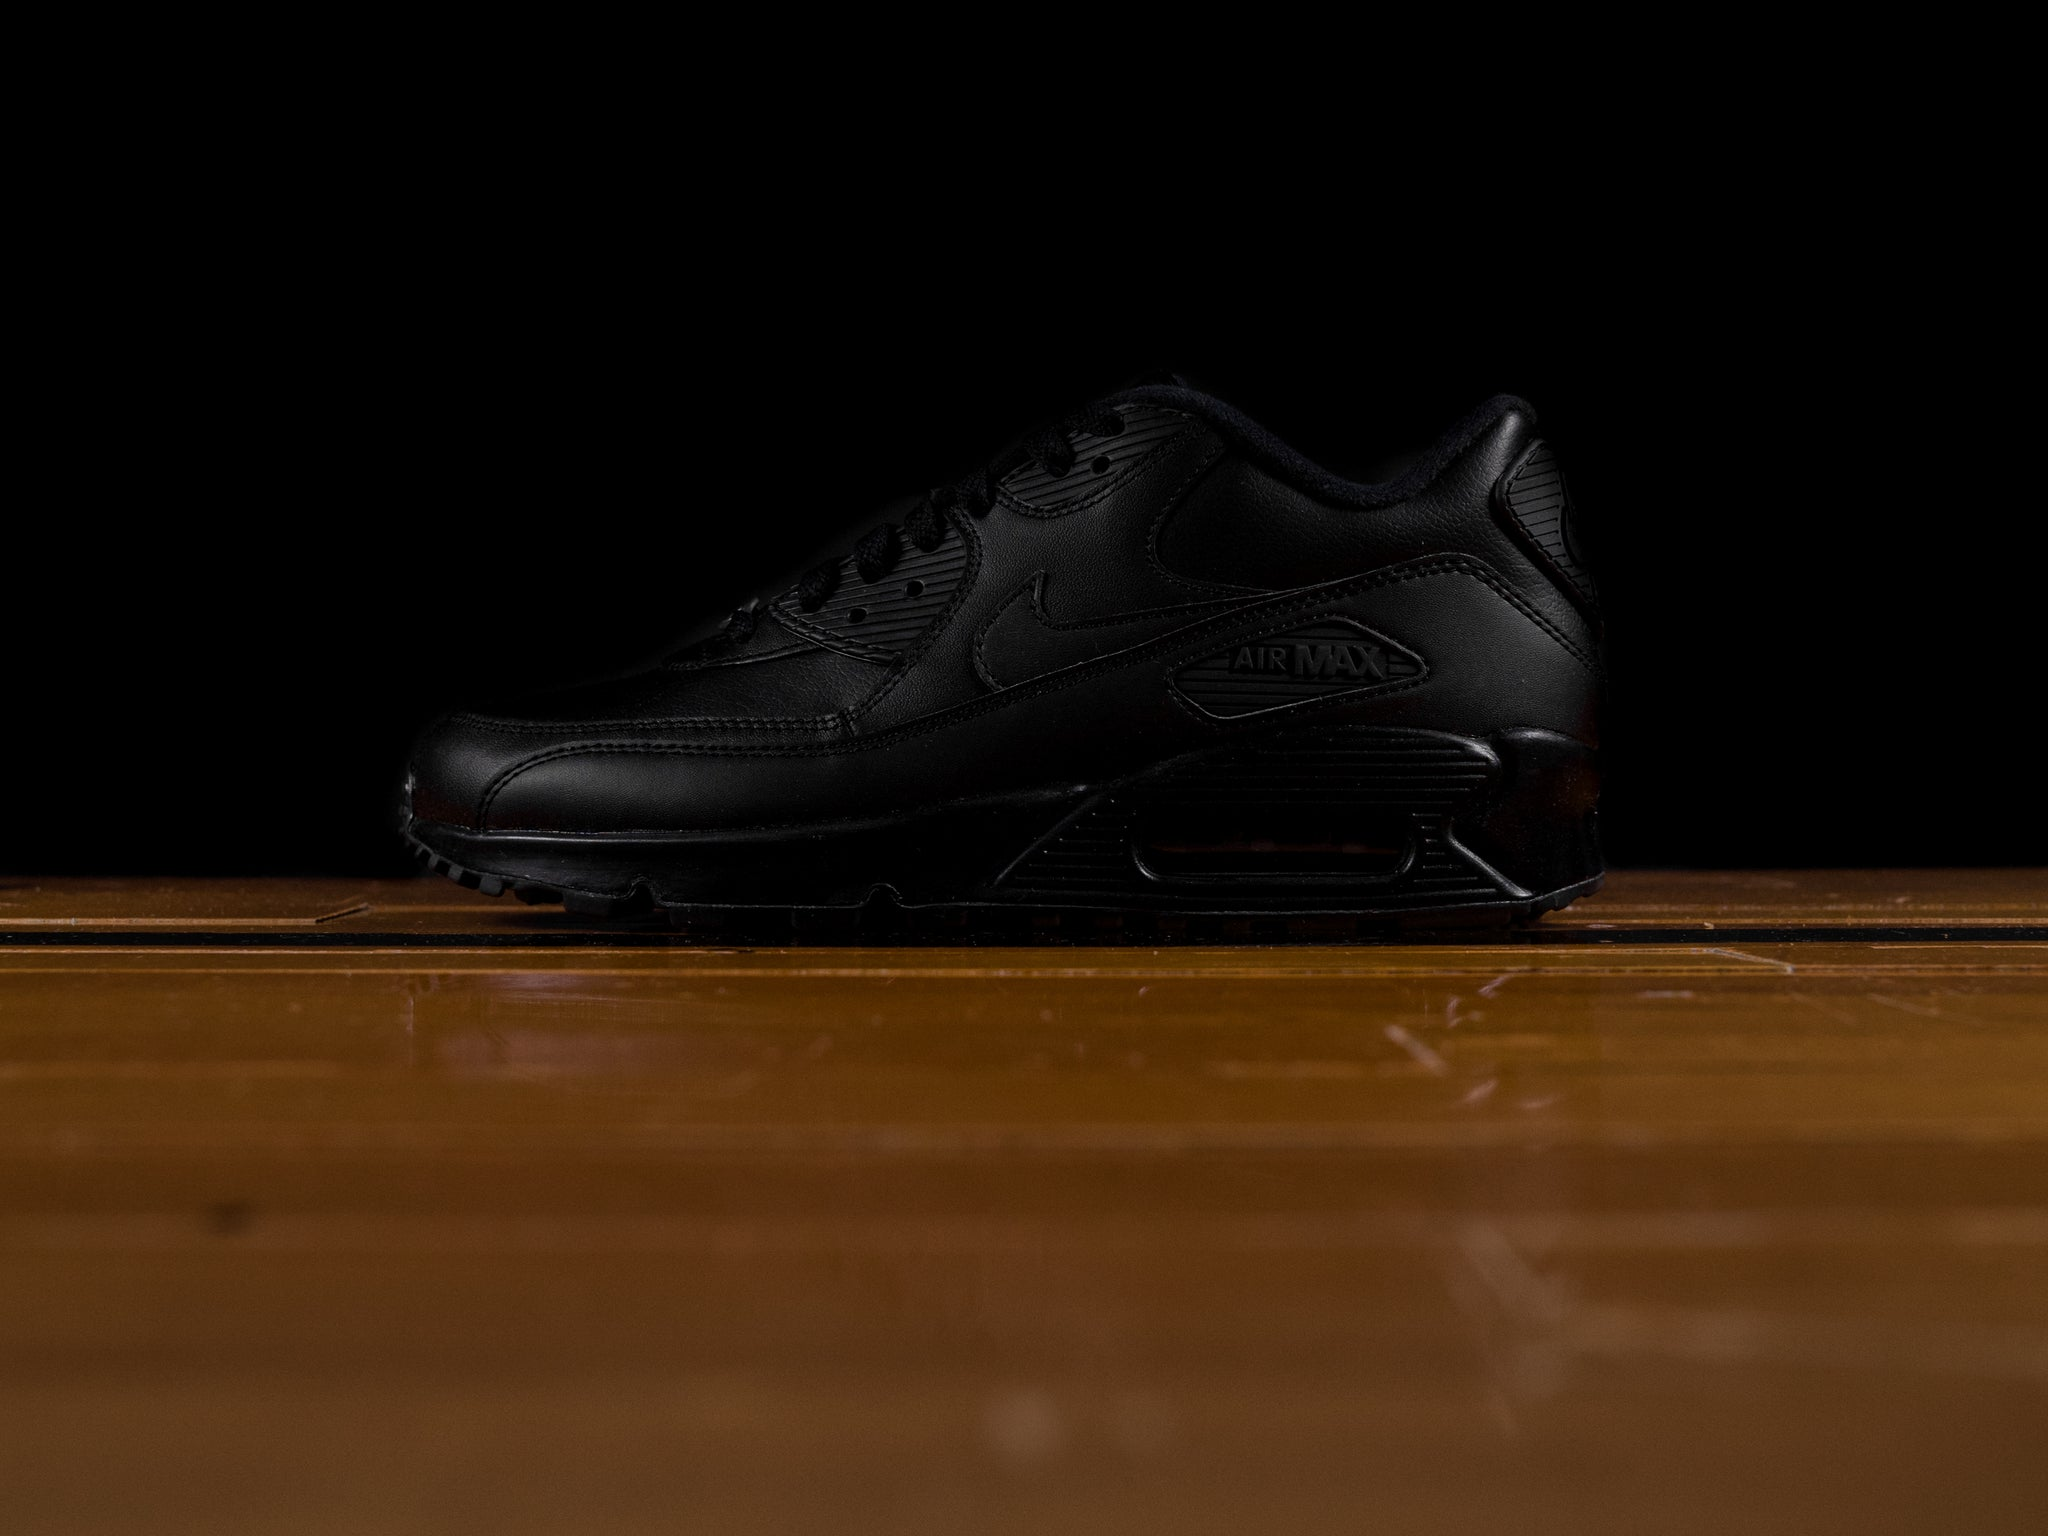 Nike Air Max 90 Leather shoes black